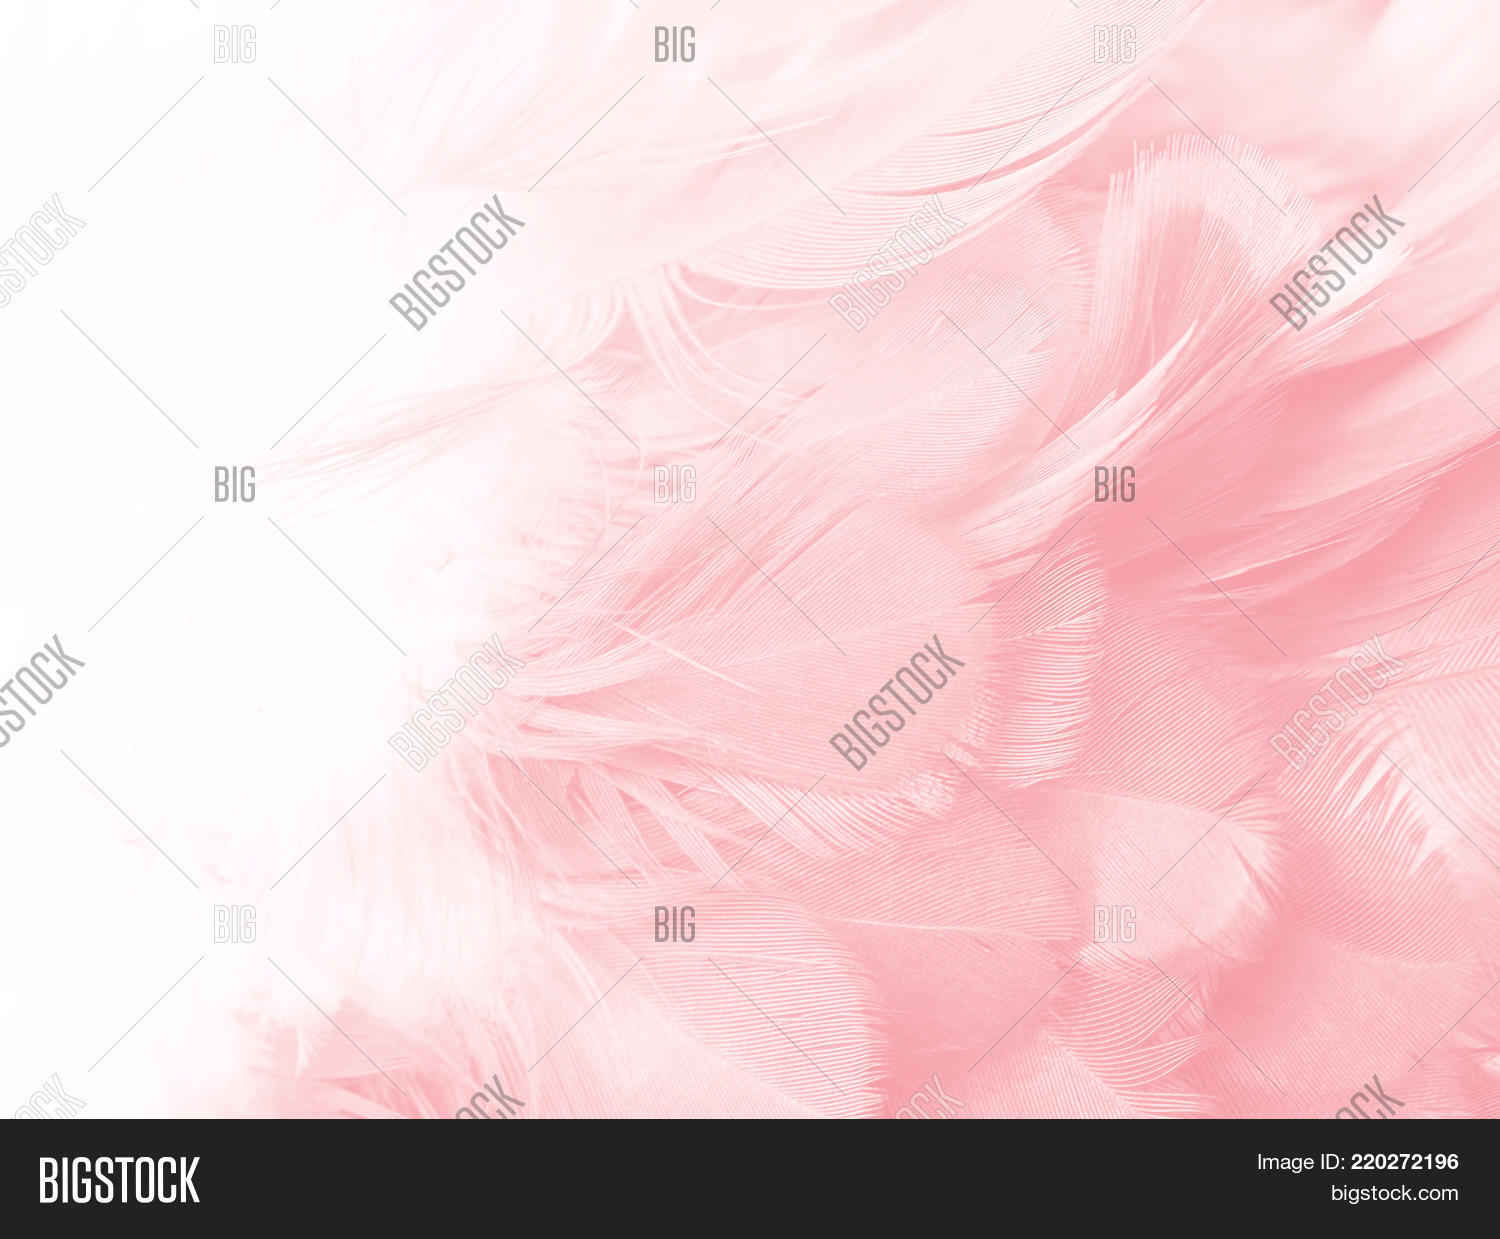 abstract,angel,background,black,bohemian,boho,chicken,closeup,color,copy,coral,dark,design,desktop,dove,elegant,fashion,feather,fluff,fur,heaven,image,interior,isolated,light,luxury,macro,nature,pastel,pattern,peacock,pigeon,pink,soft,space,style,subtle,swan,teal,texture,trend,vintage,wallpaper,watercolor,white,wings